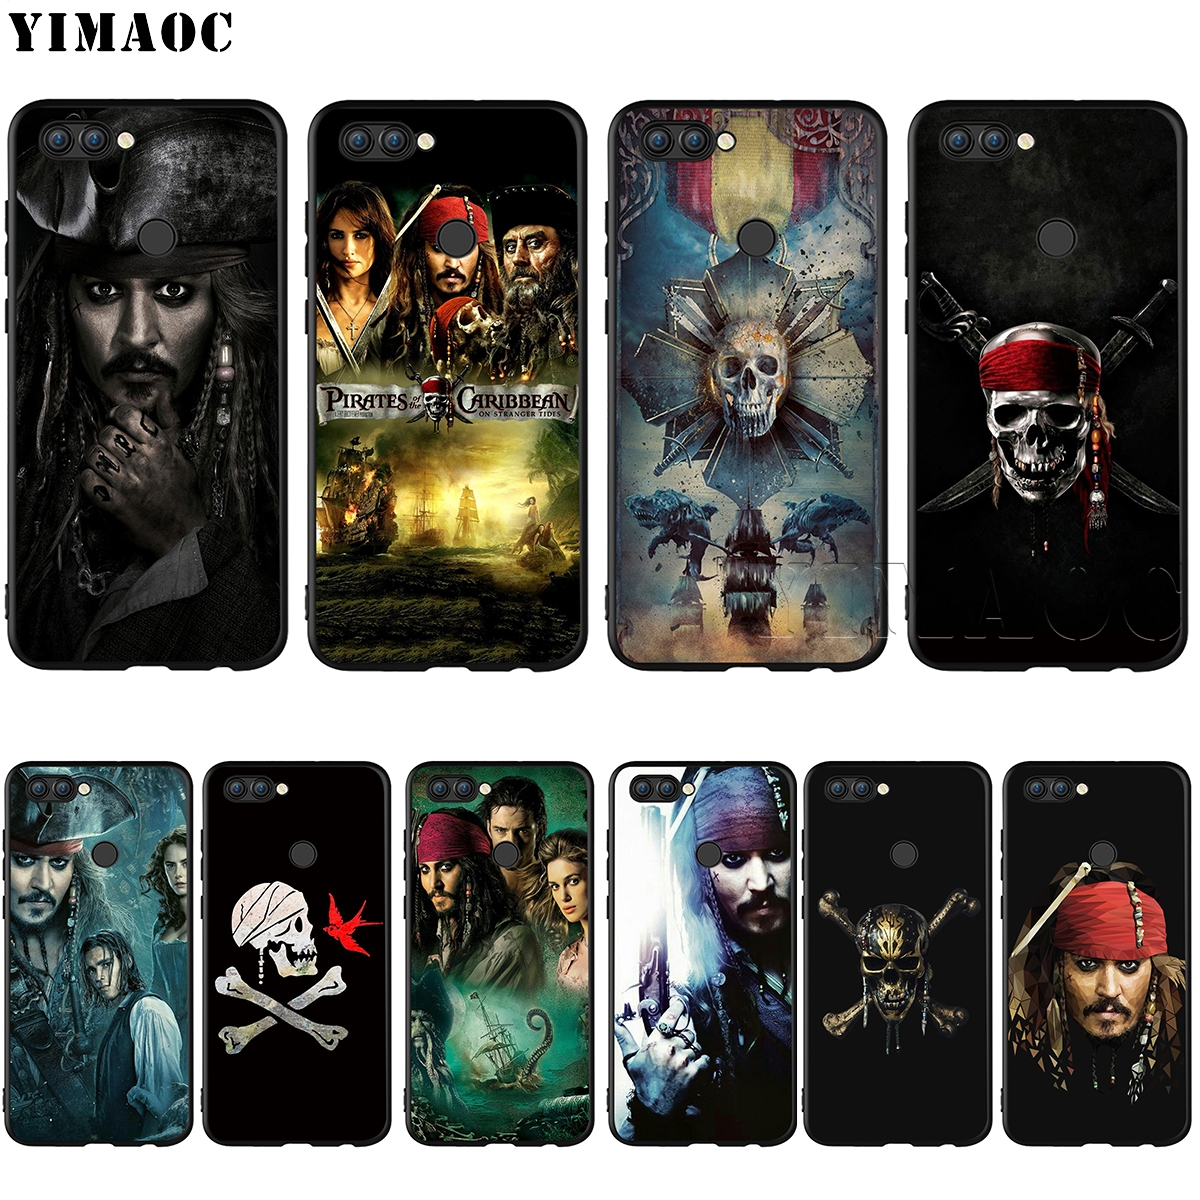 YIMAOC Pirates Of The Caribbean Silicone Case for Huawei Honor Mate Y6 6A 8 9 10 P8 P9 P10 P20 P Smart Lite Pro 2017